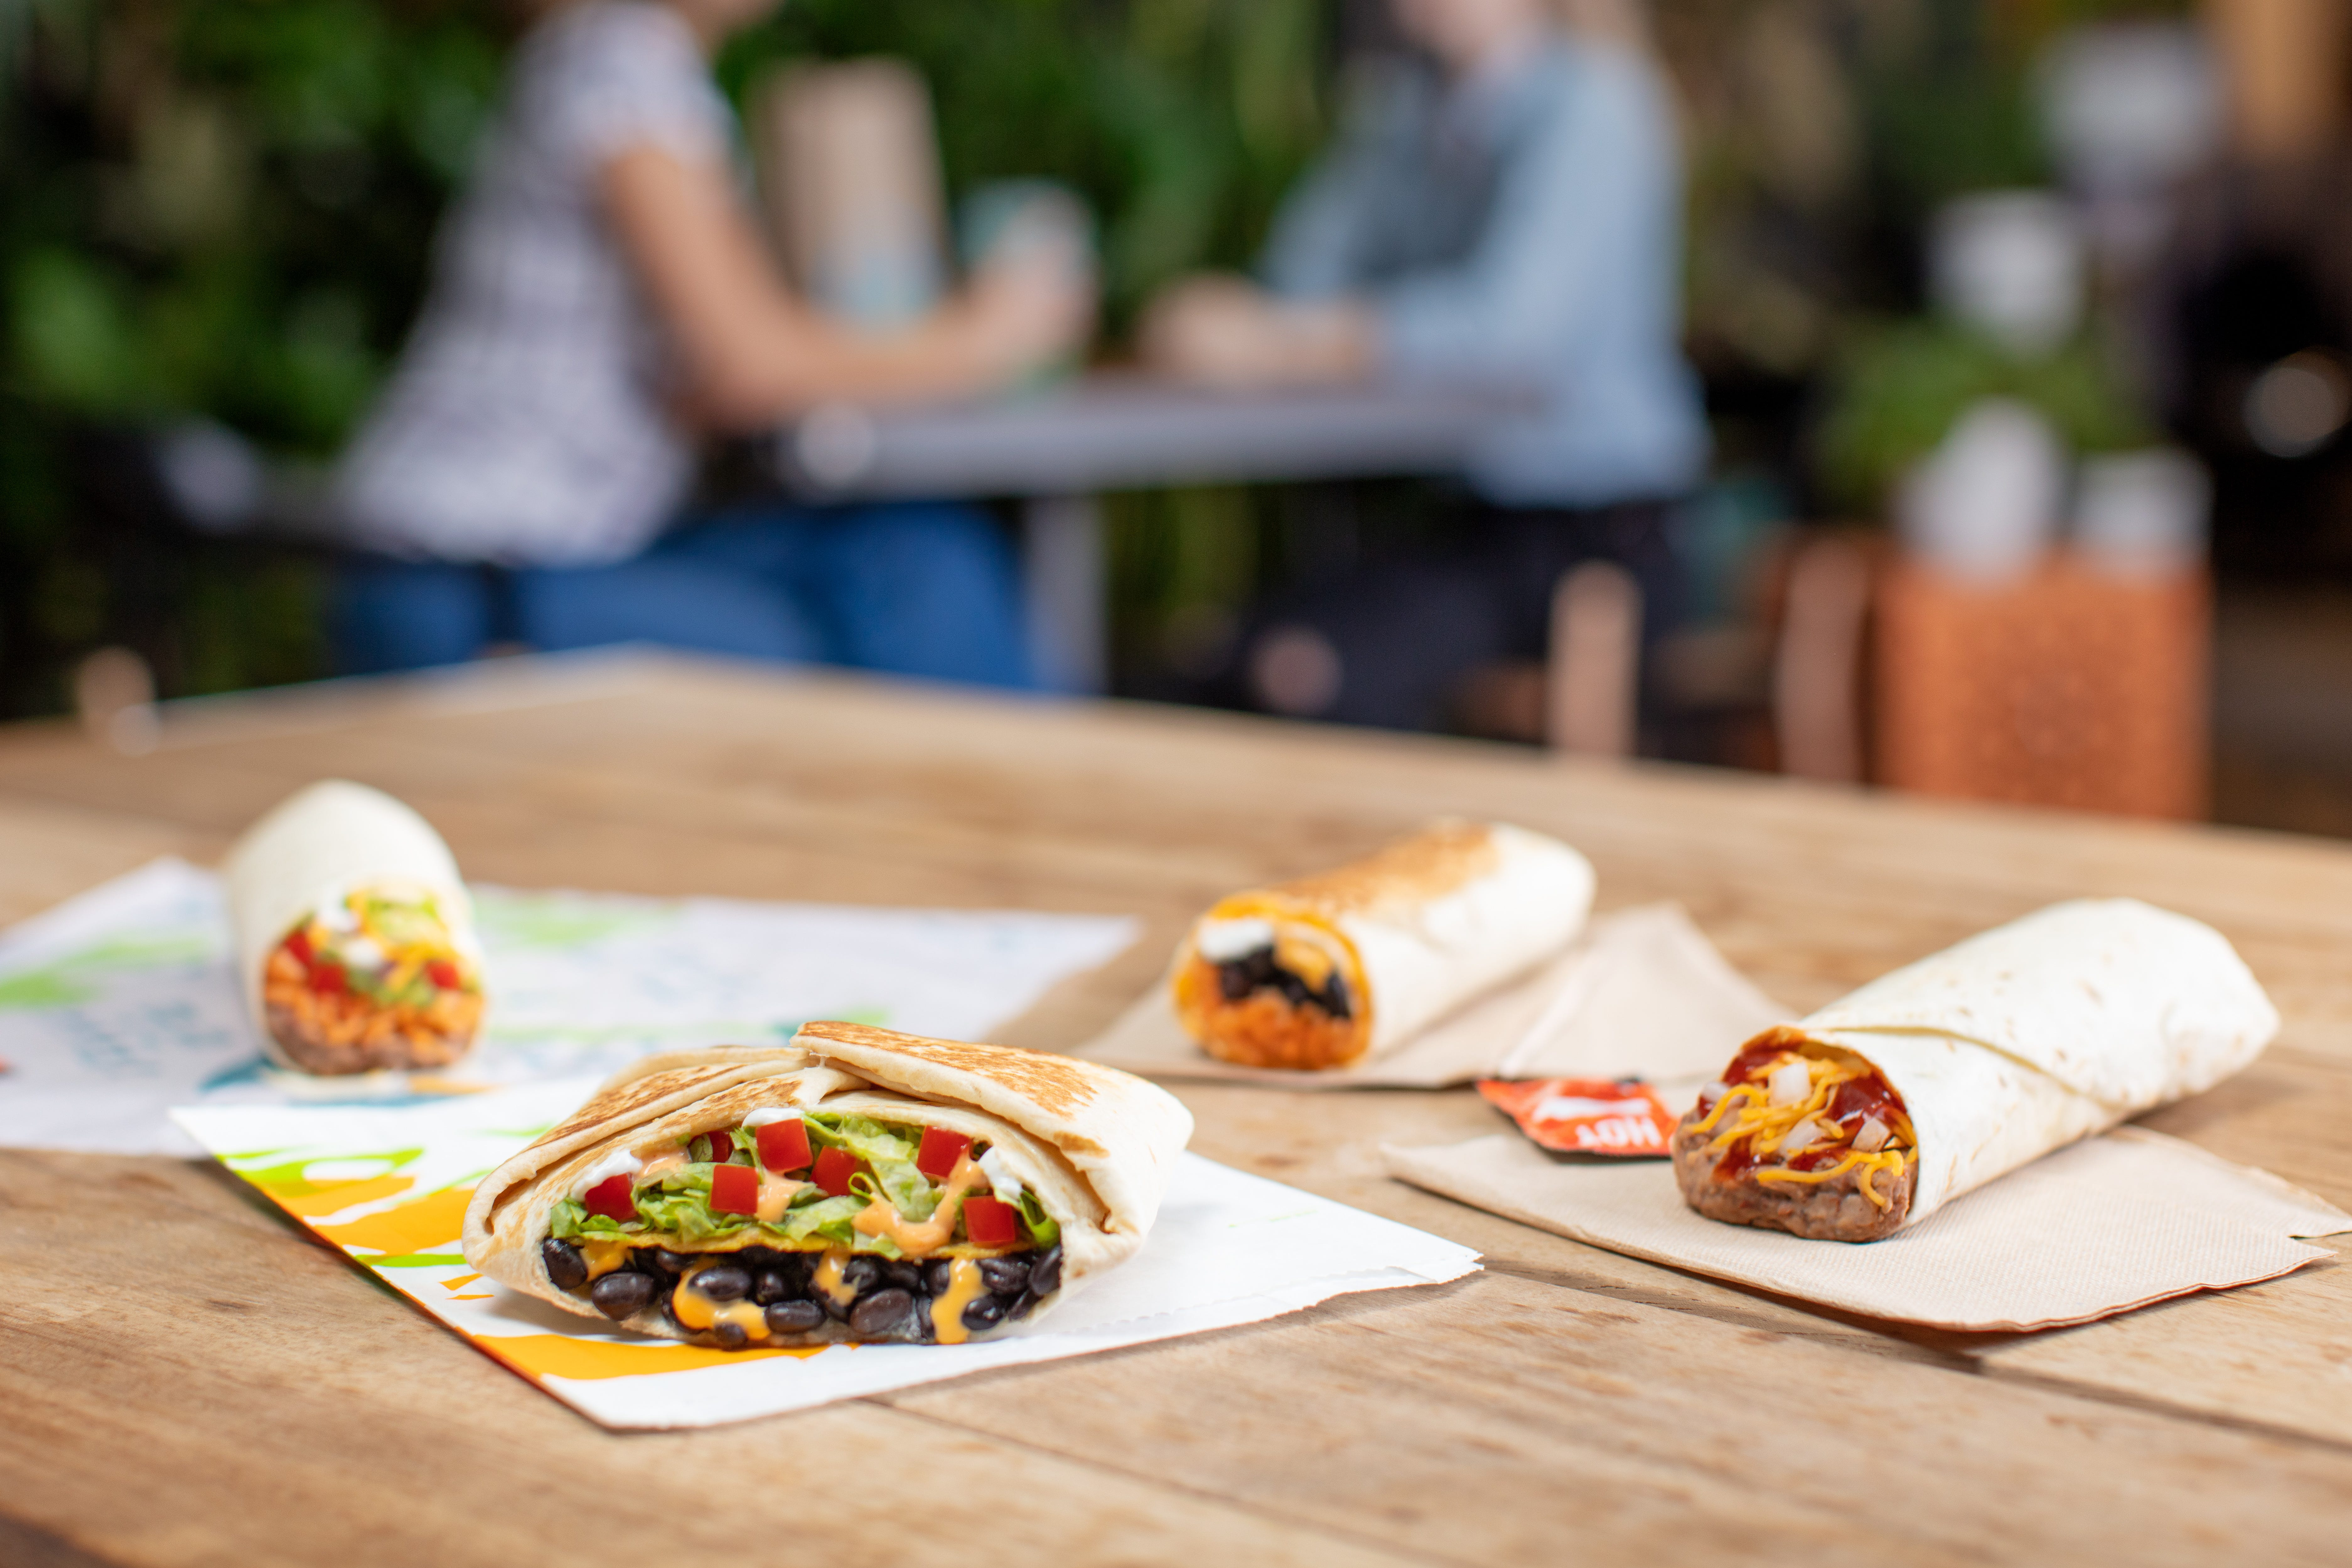 Taco Bell vegetarian menu and new items launch Sept. 12 nationwide